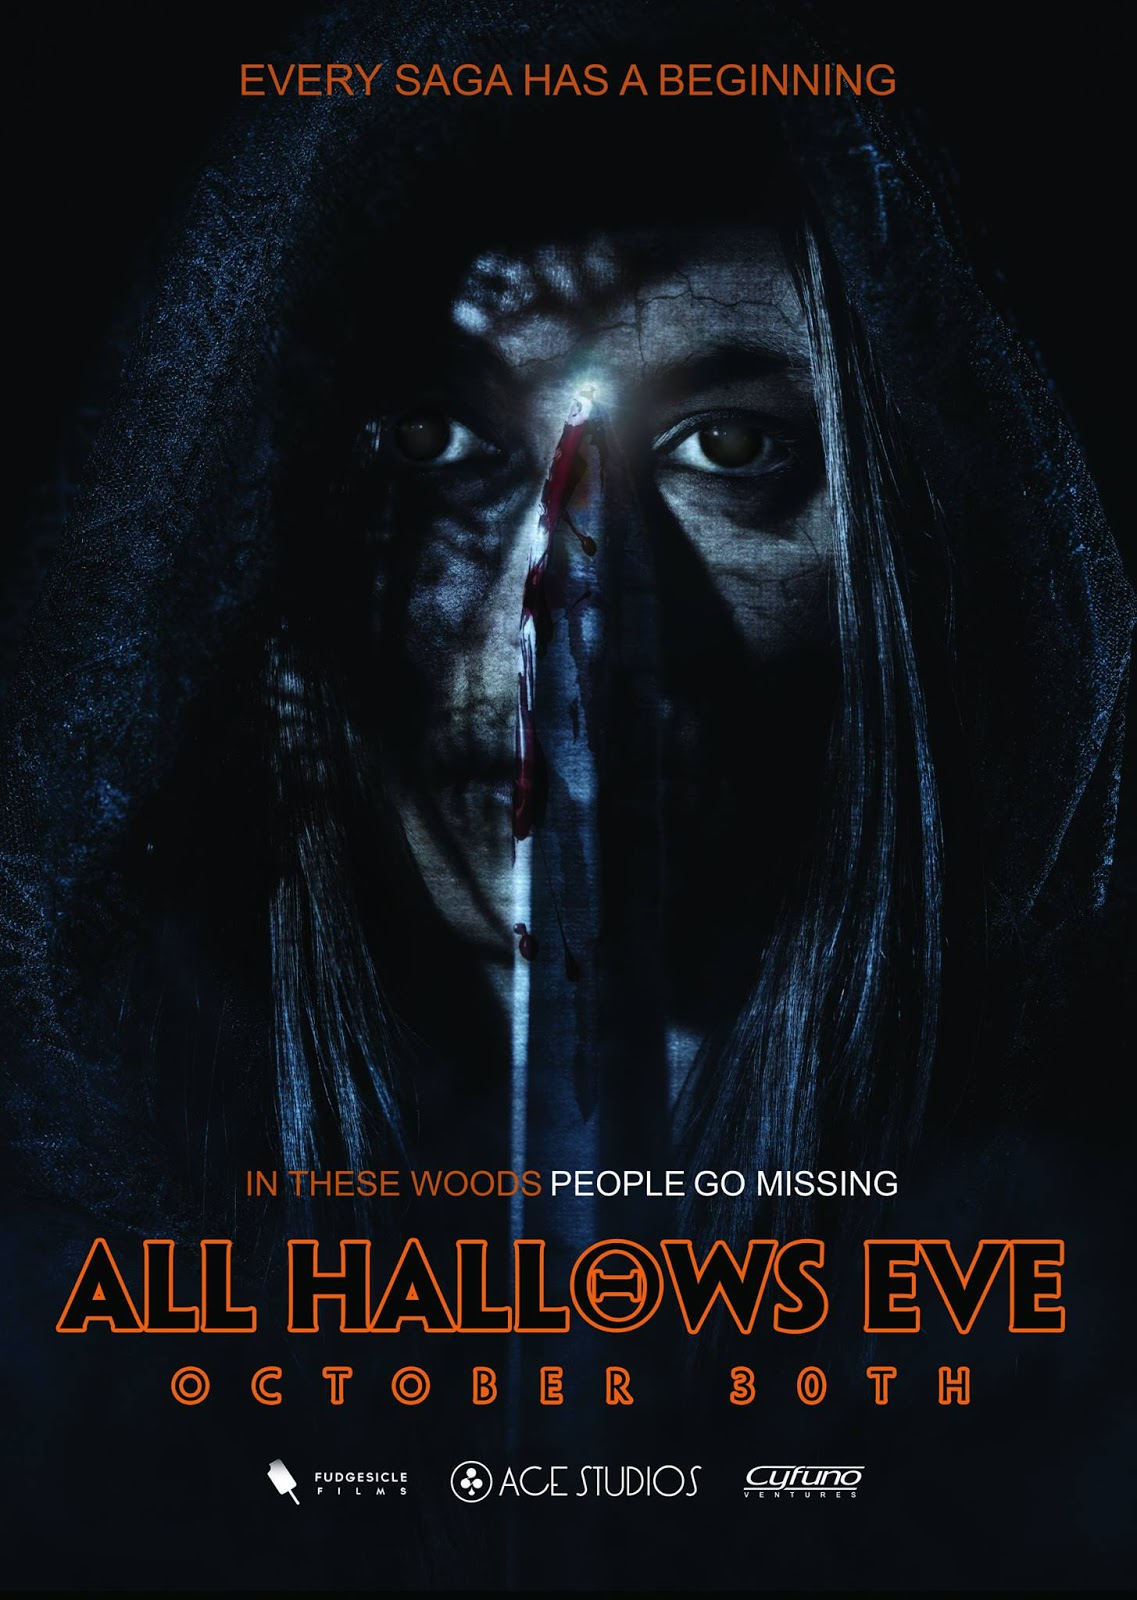 All Hallows Staining: The Horrors Of Halloween: ALL HALLOWS EVE: OCTOBER 30TH